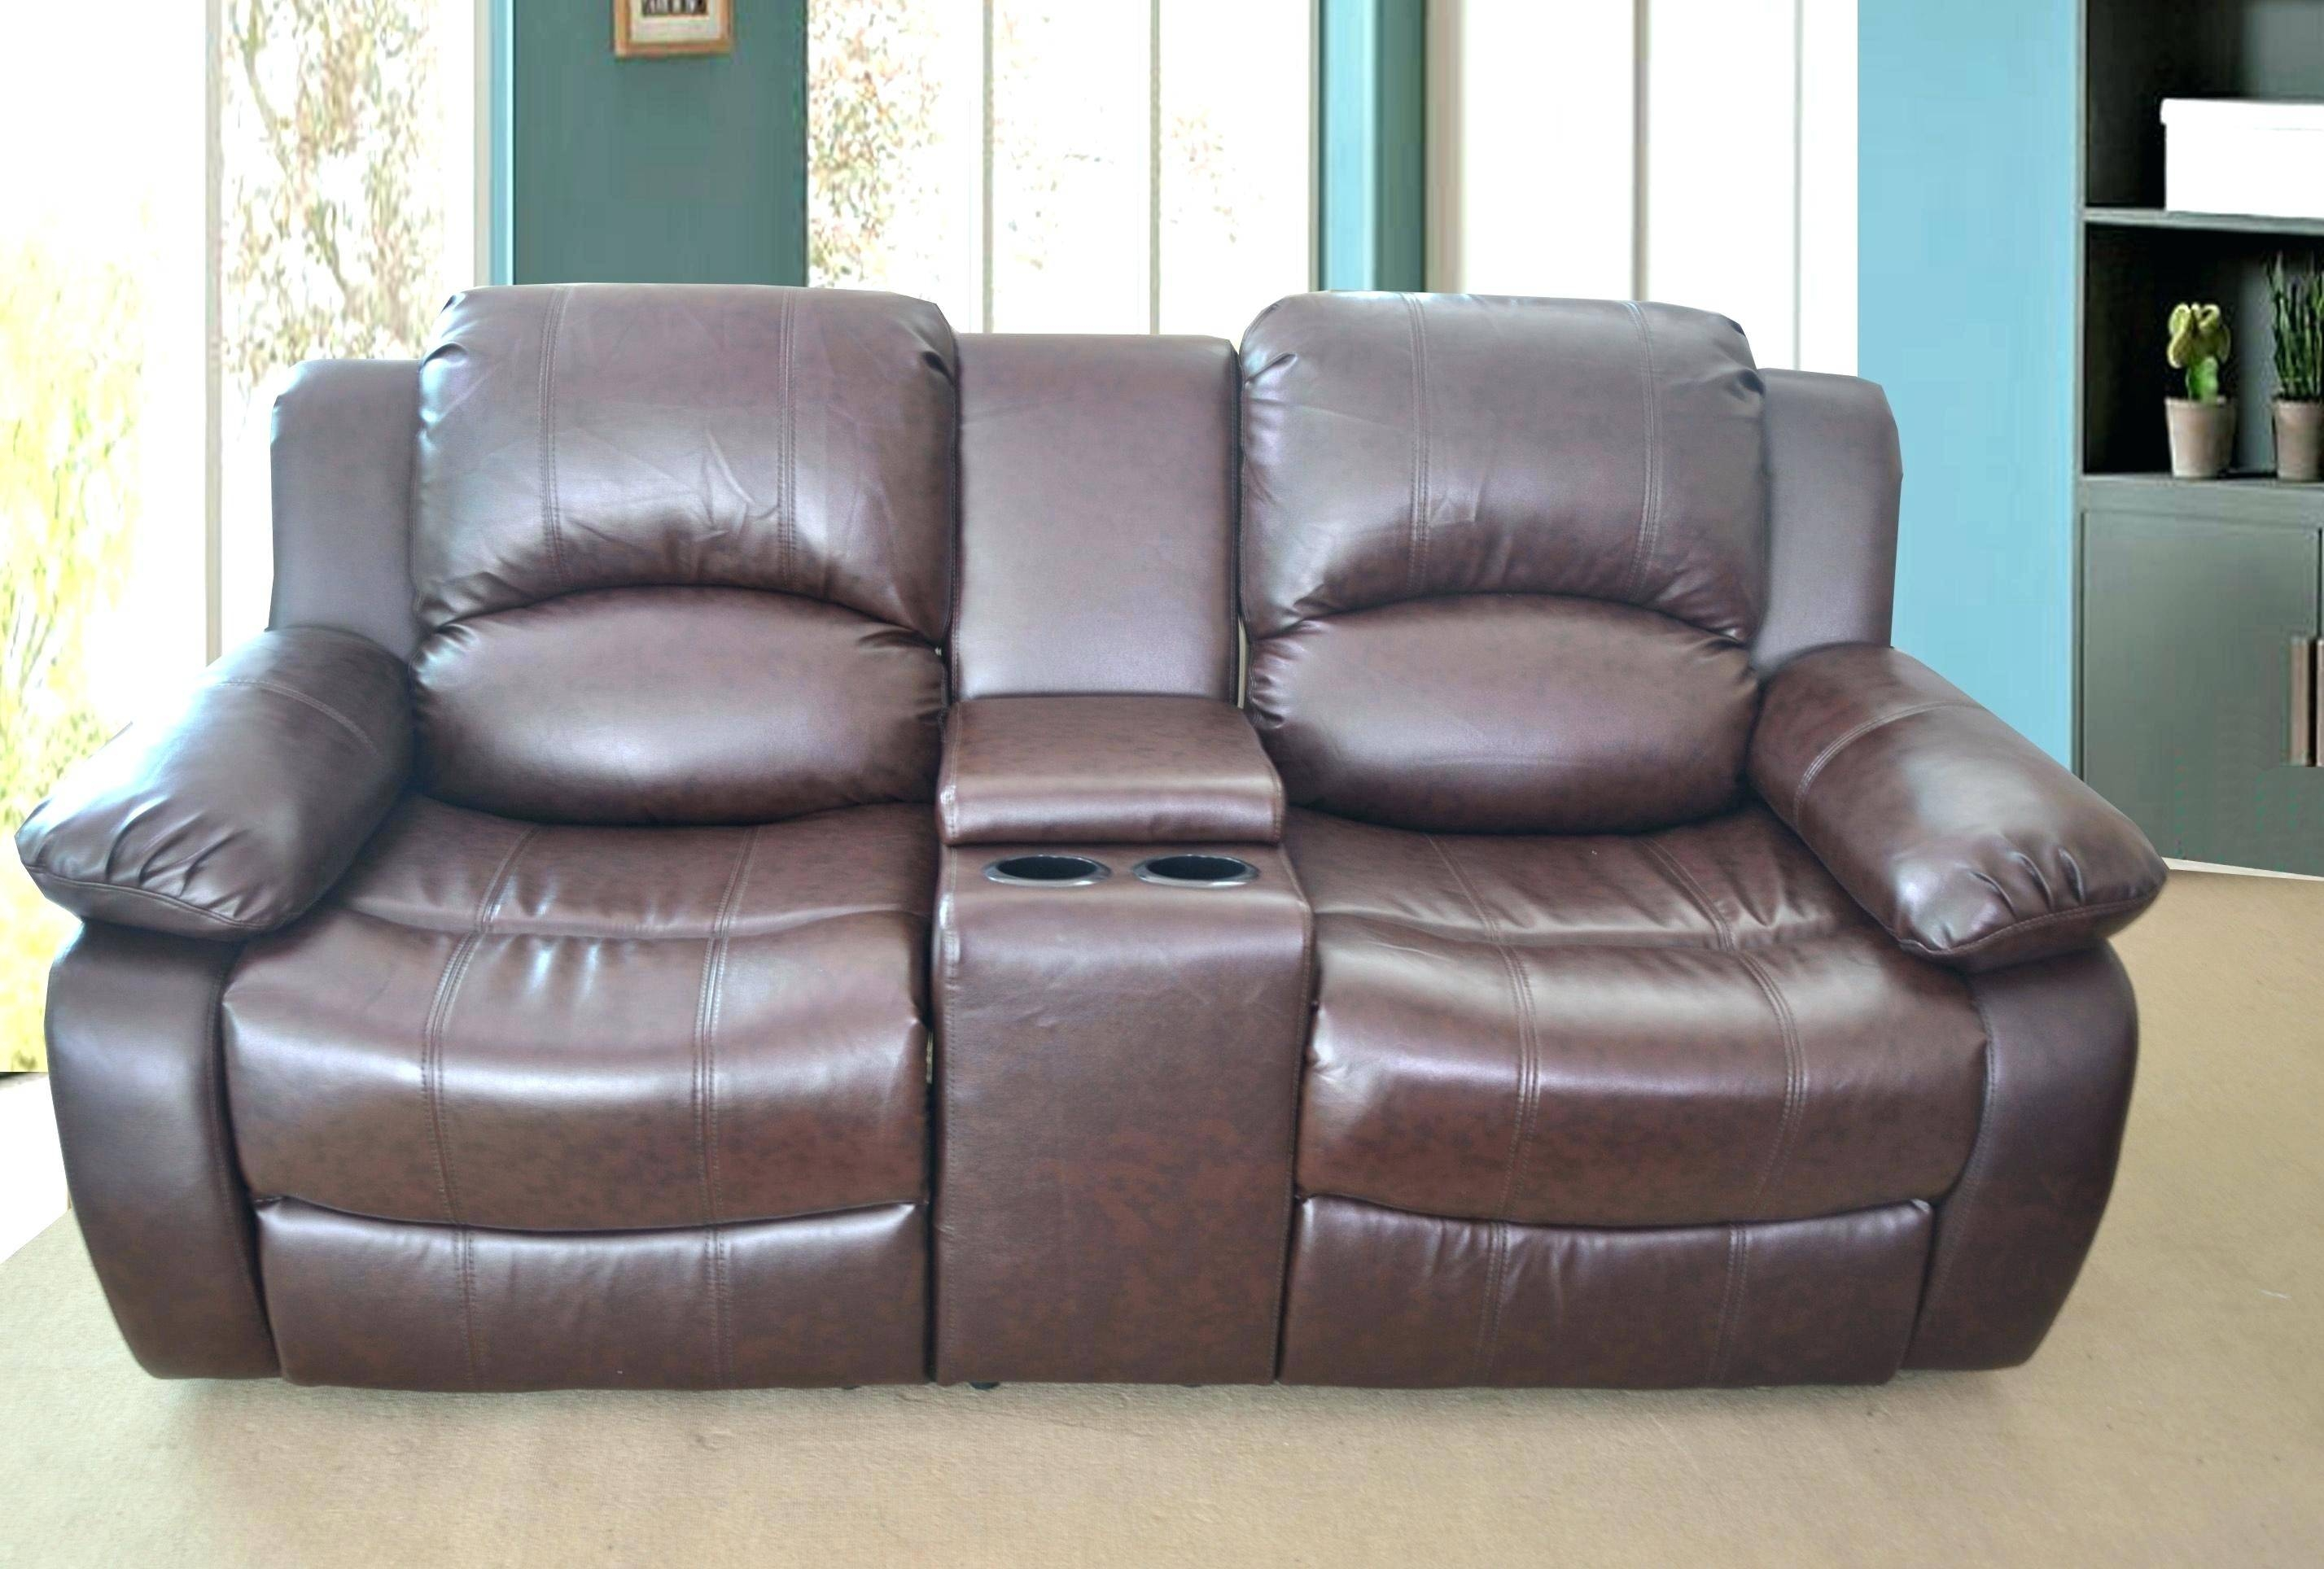 Berkline Leather Reclining Loveseat Costco Enchanting Sofas Center intended for Berkline Leather Sofas (Image 4 : berkline loveseat recliners - islam-shia.org